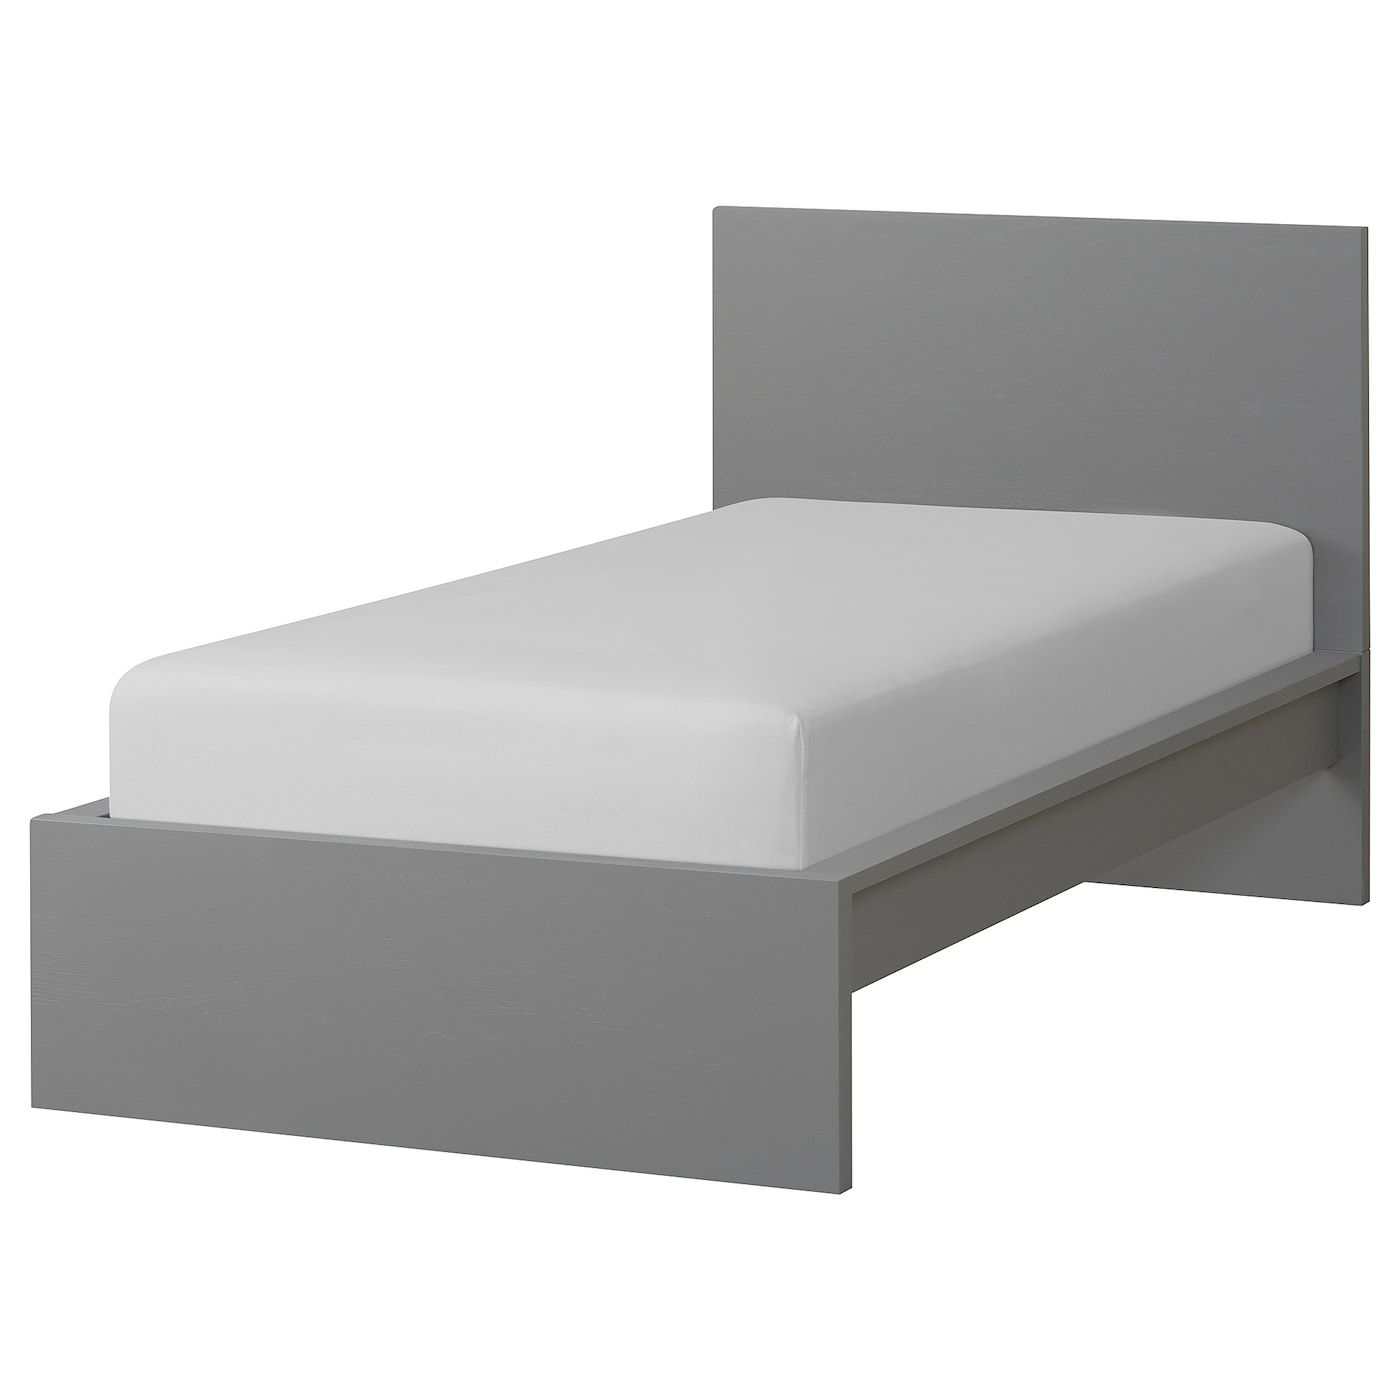 Malm Bed Frame High Gray Stained Luroy Twin Malm Bett